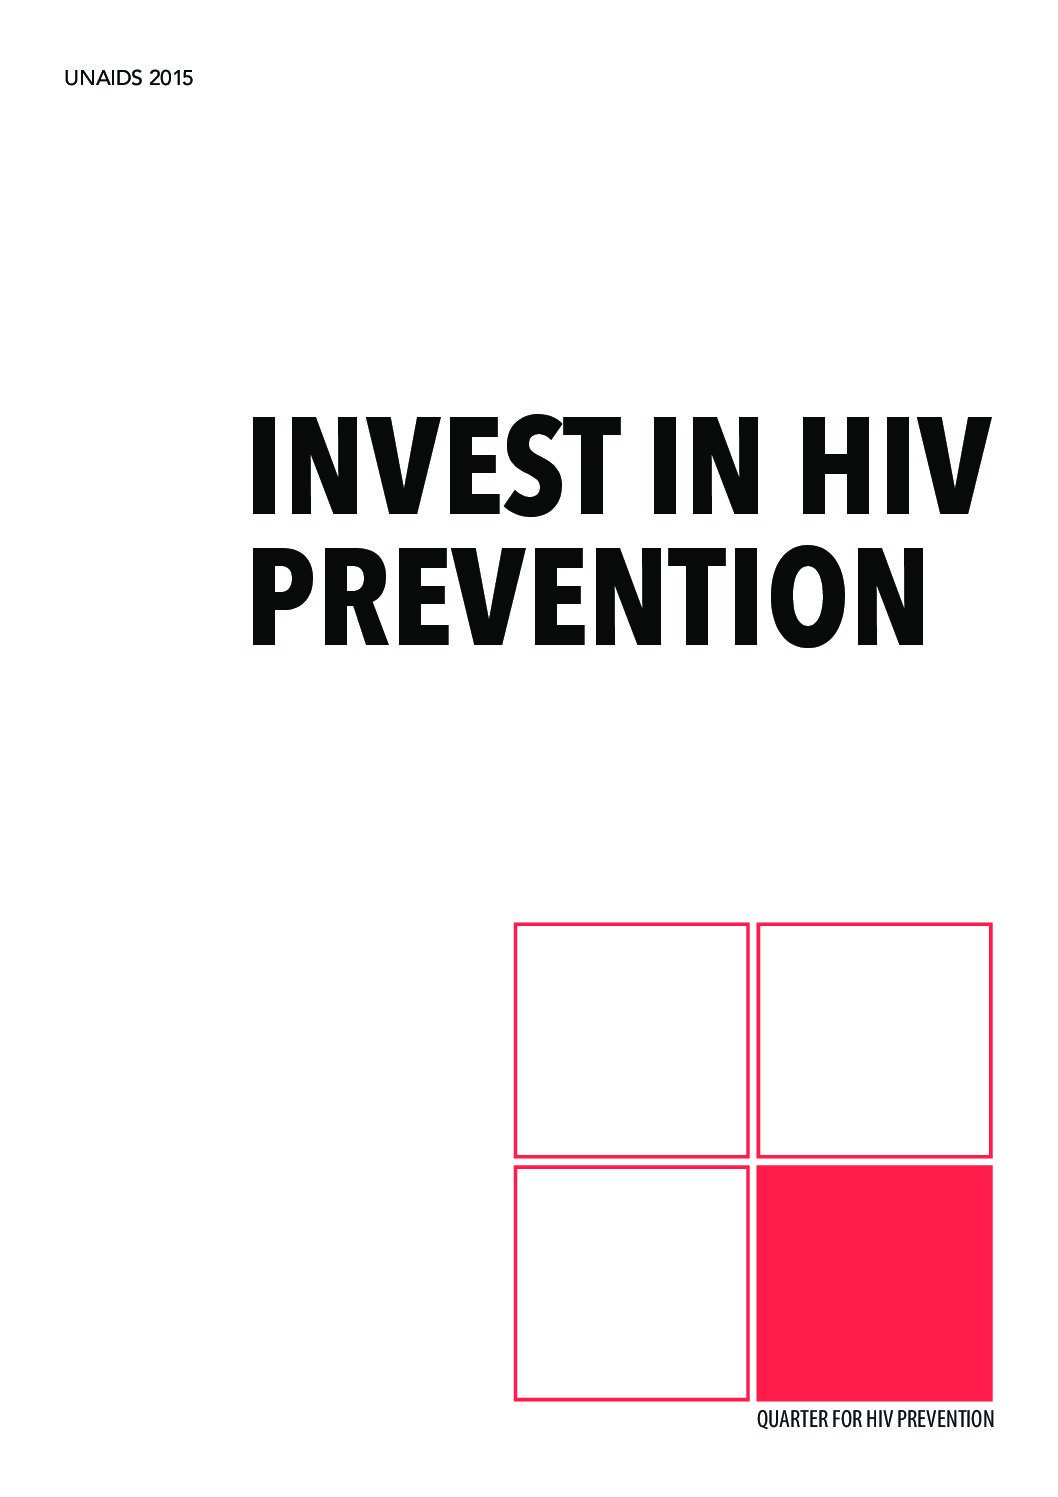 Invest in HIV prevention.